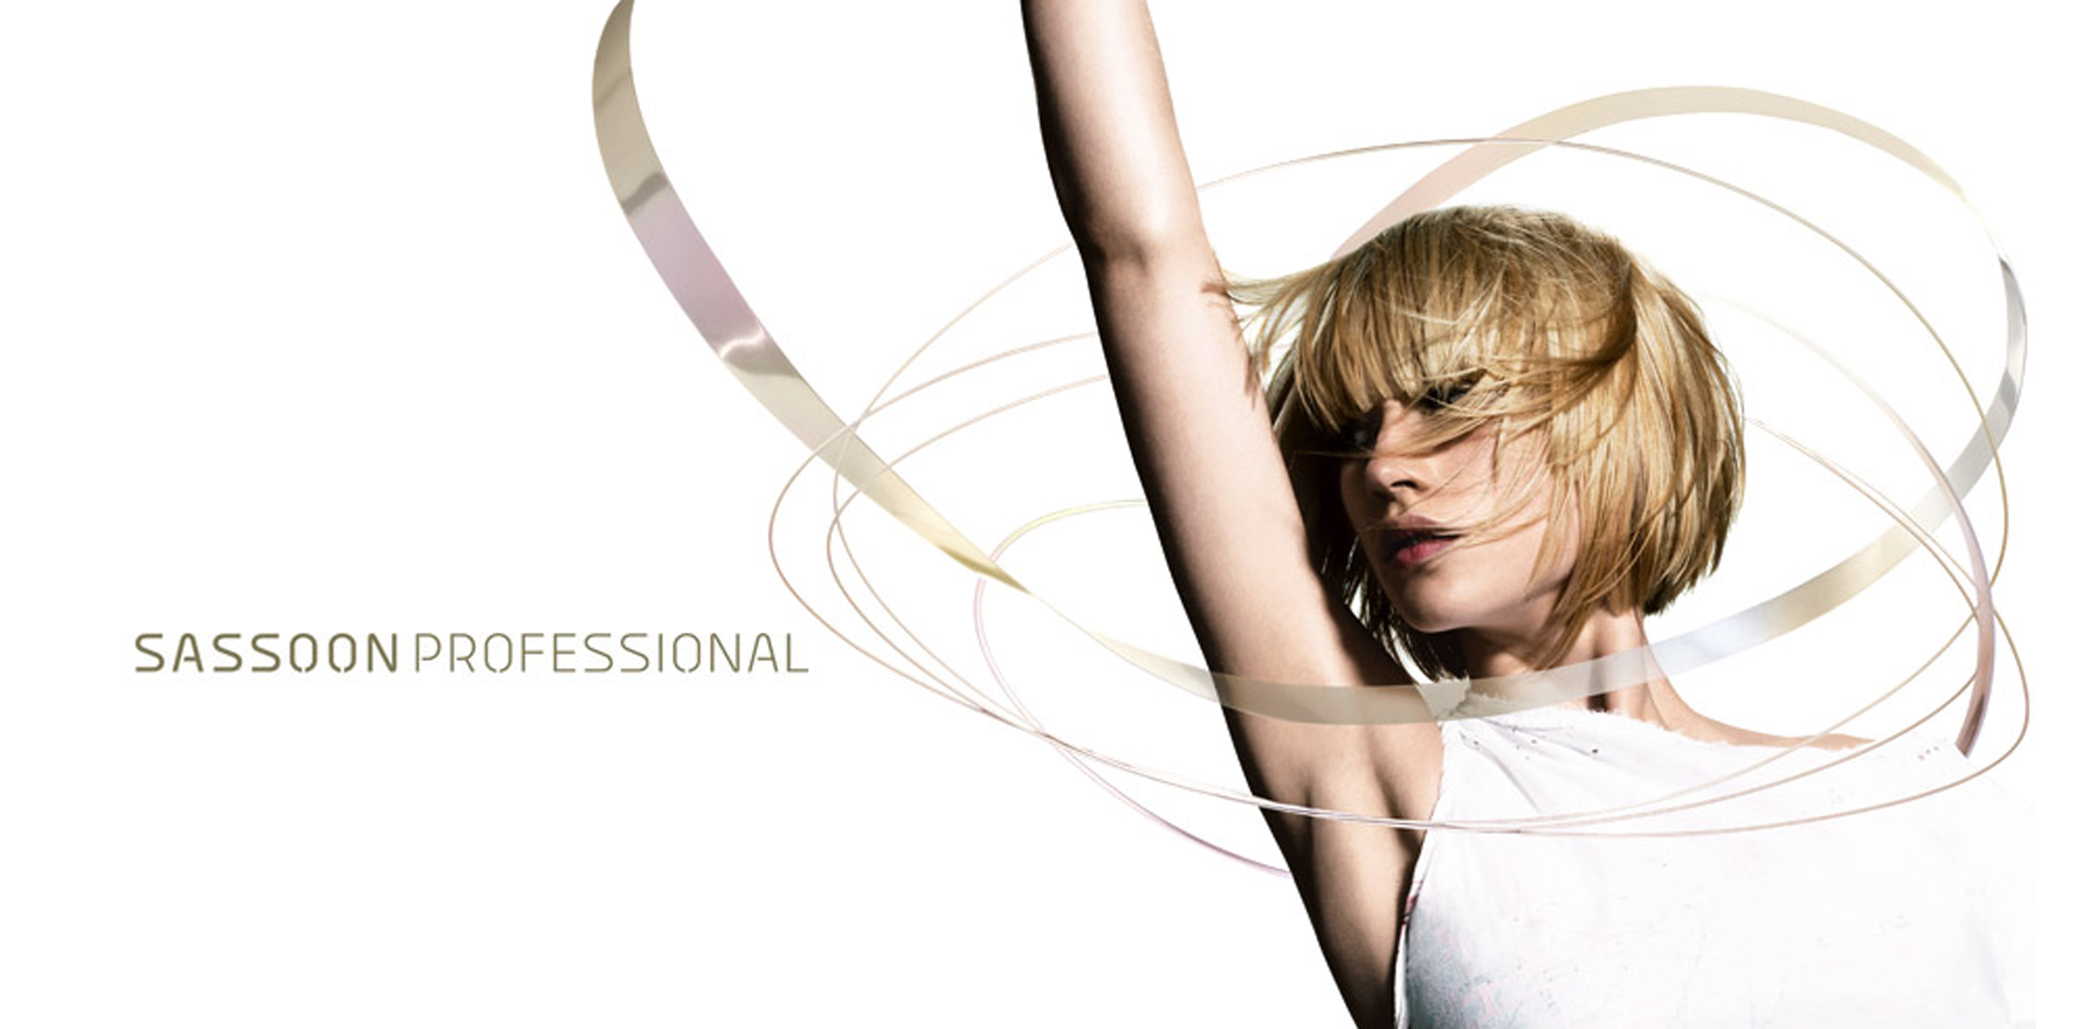 Sassoon Professional website